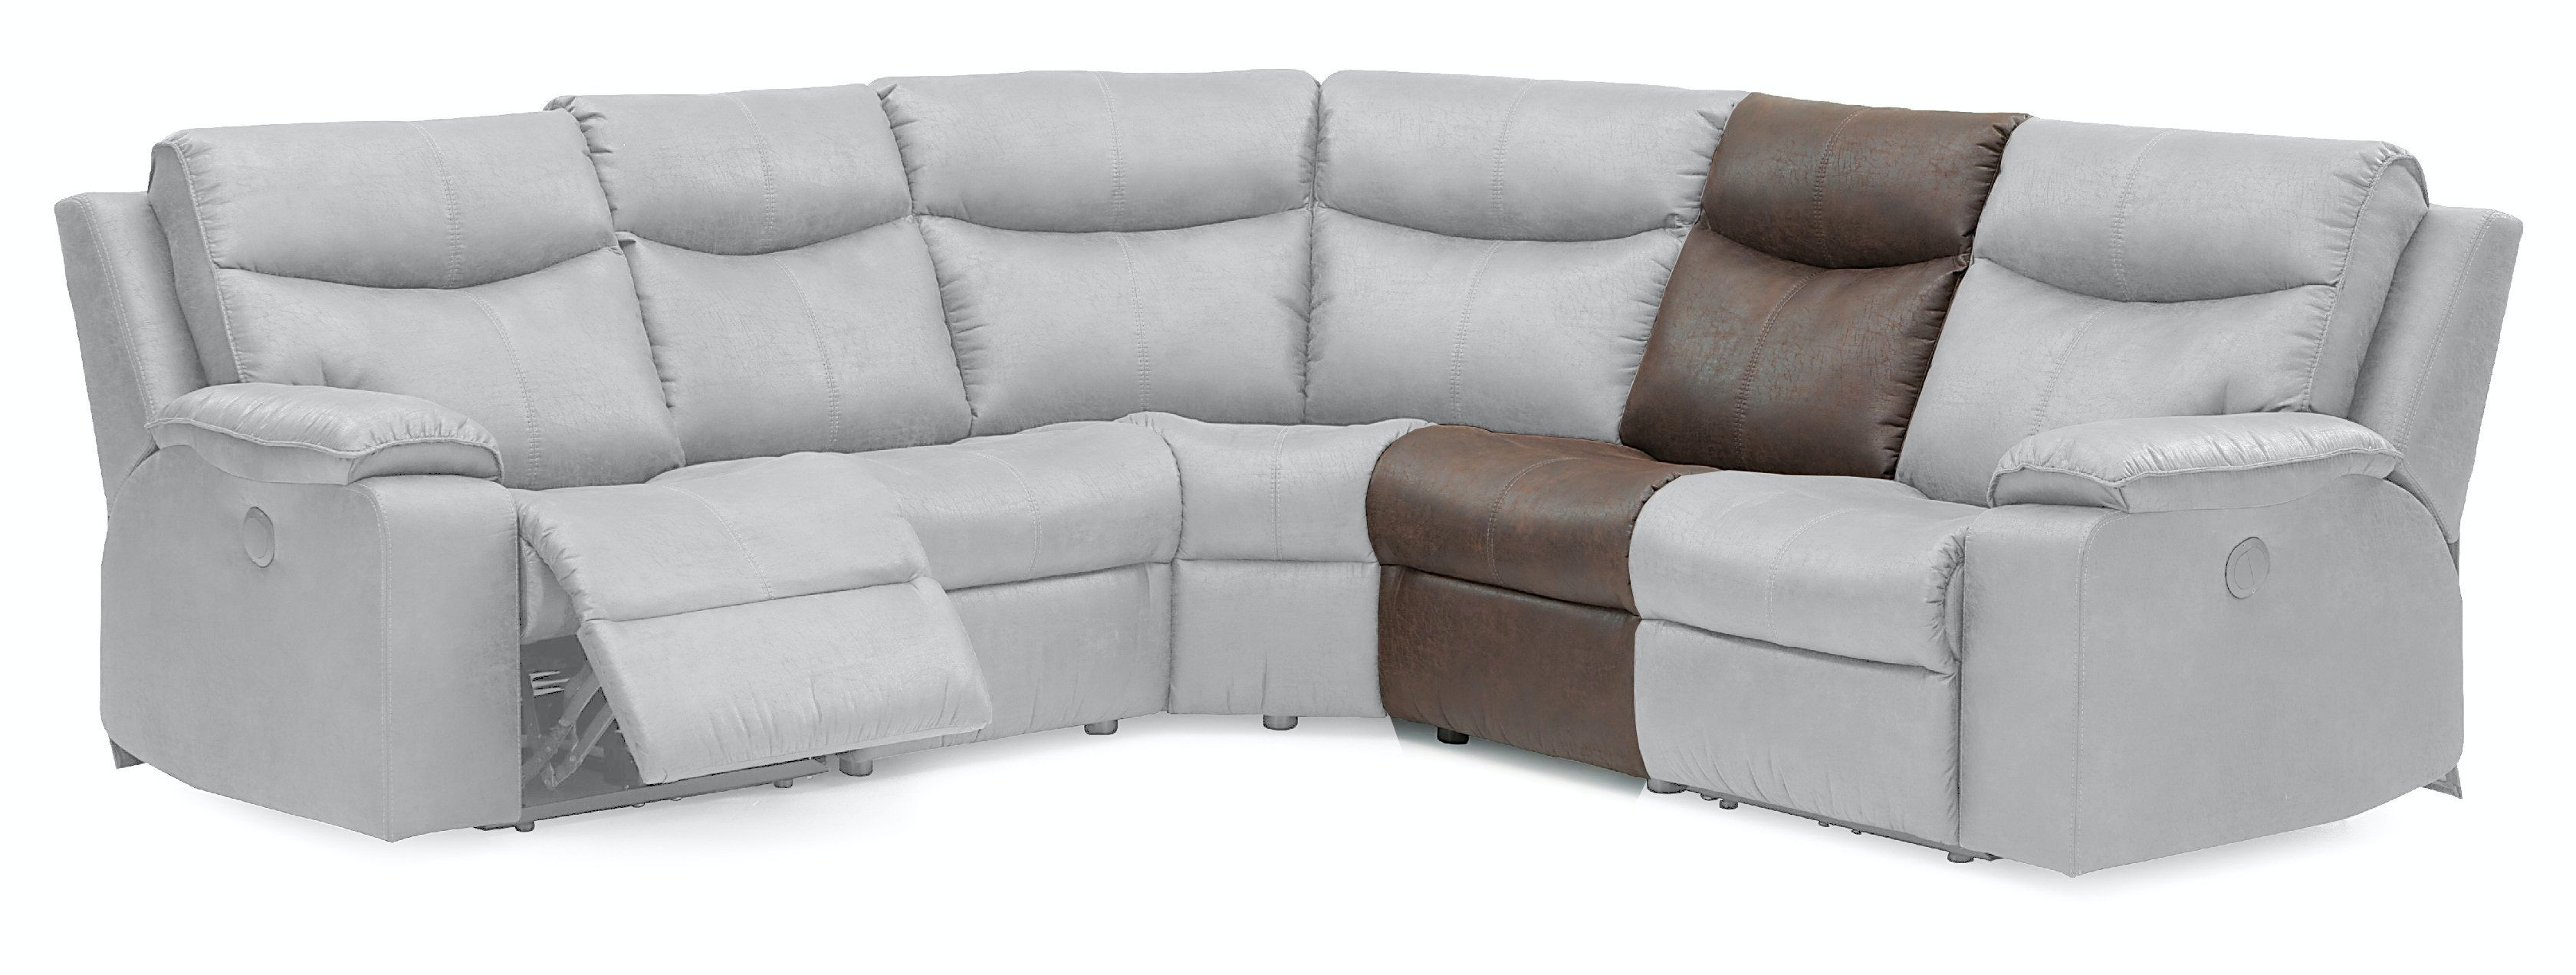 Palliser Furniture Providence Sectional 41034 10